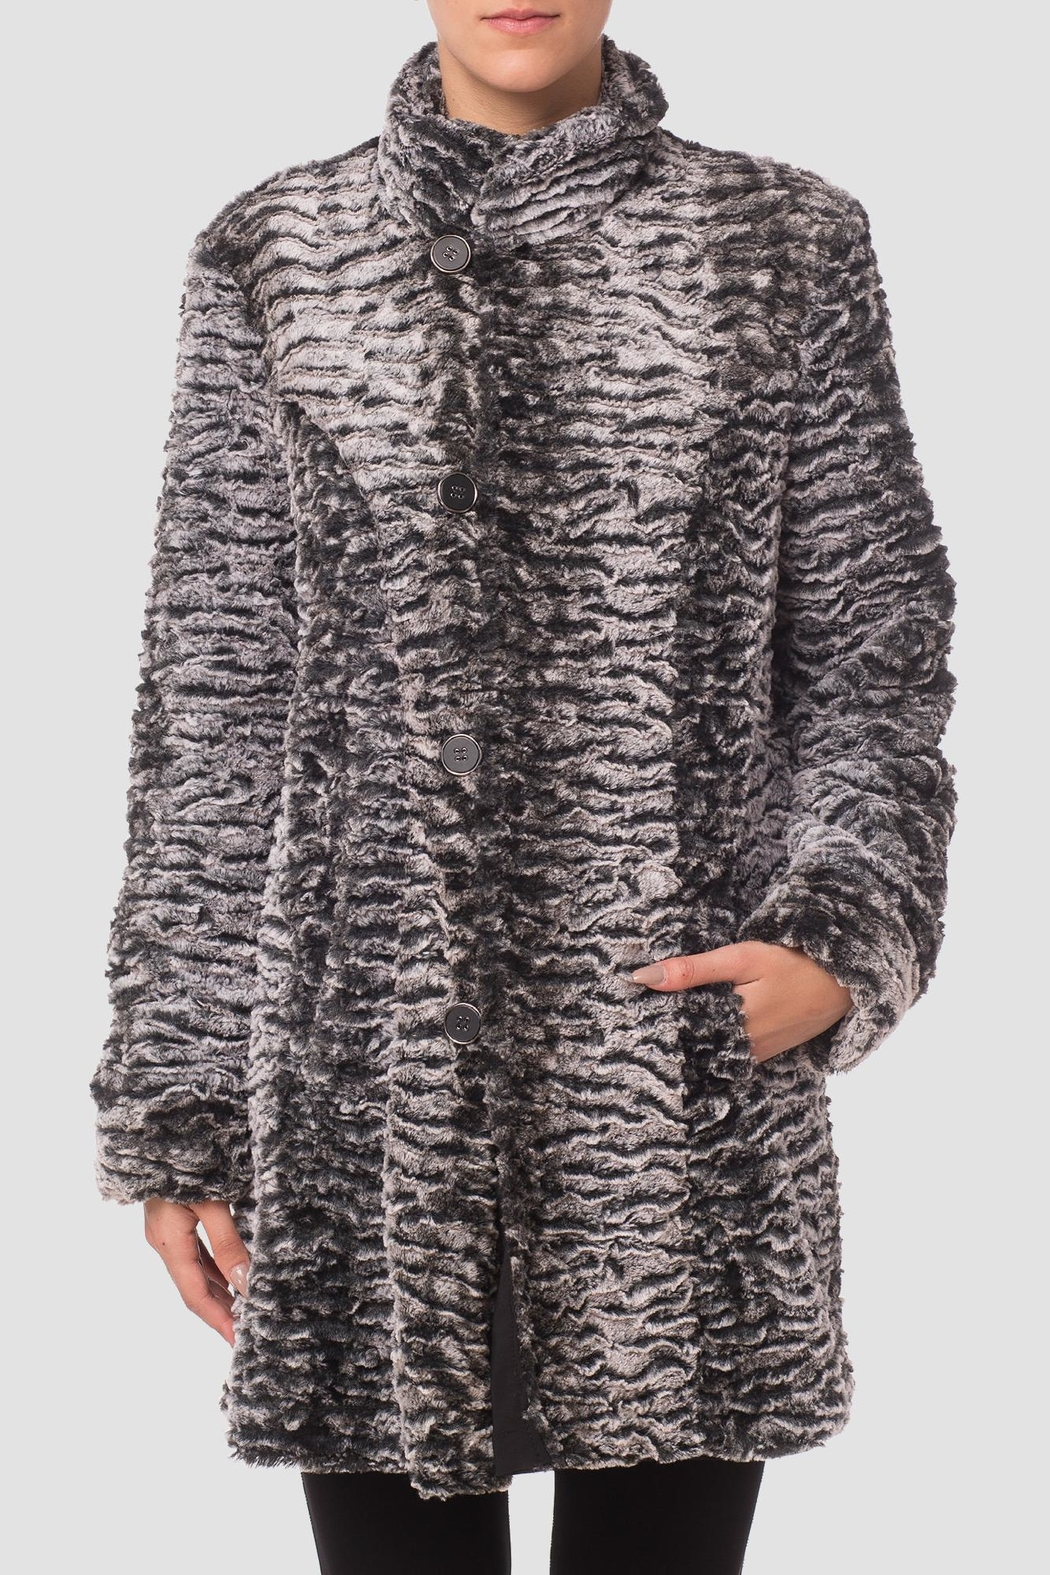 Joseph Ribkoff Faux Fur Coat - Front Cropped Image